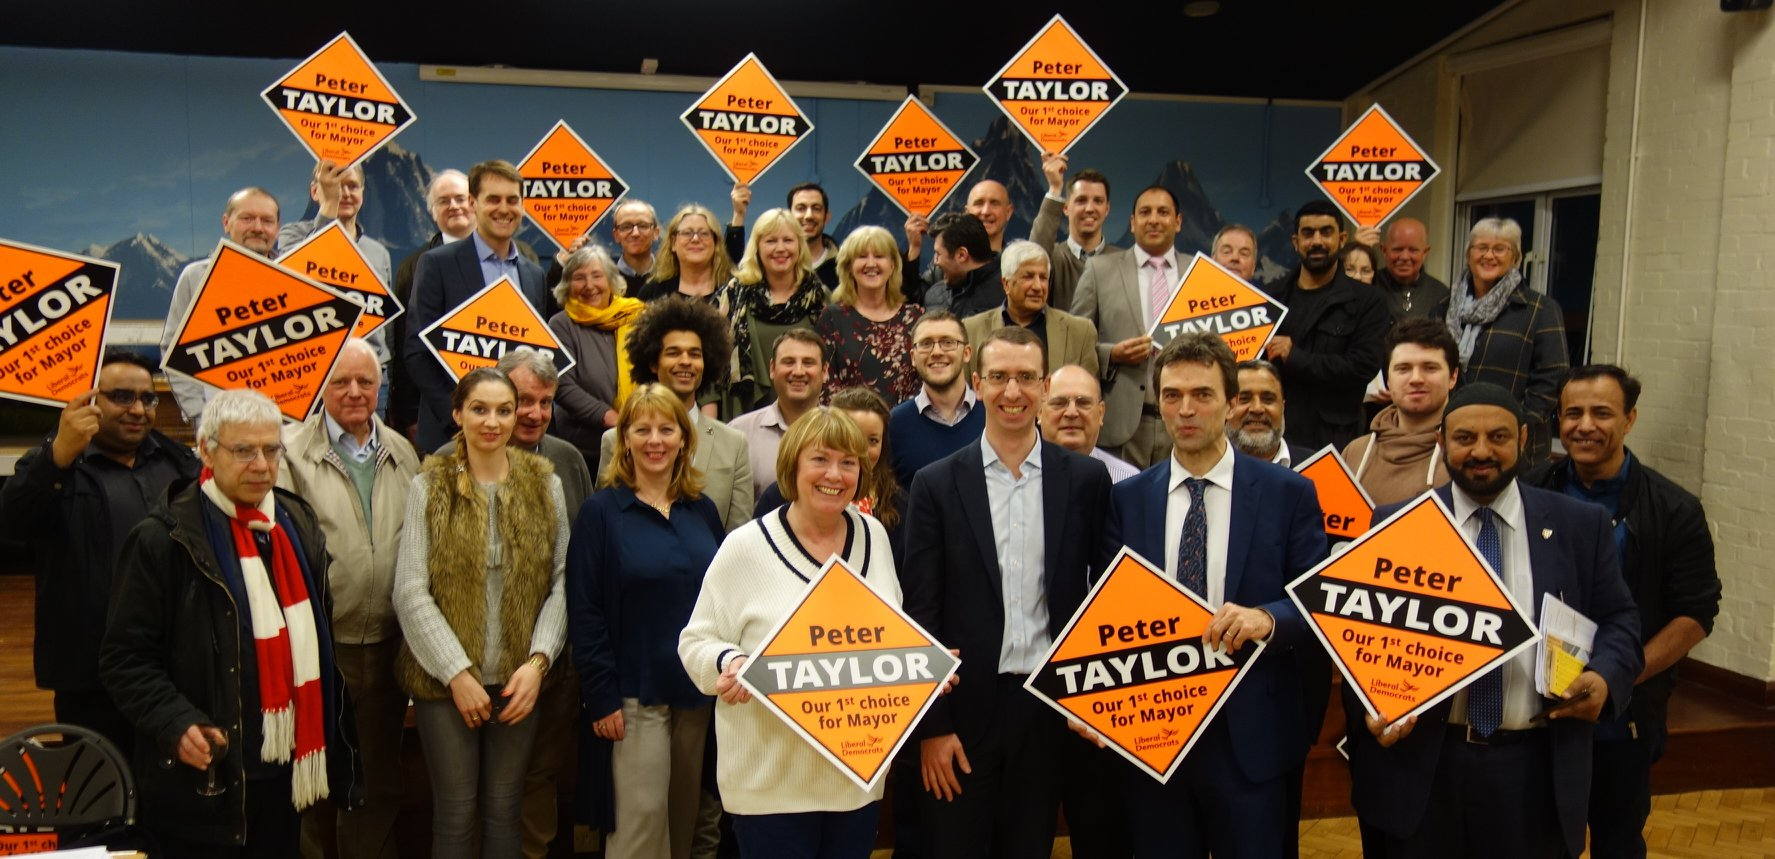 Peter Taylor and the Watford Liberal Democrats launch 'bold and ambitious' manifesto